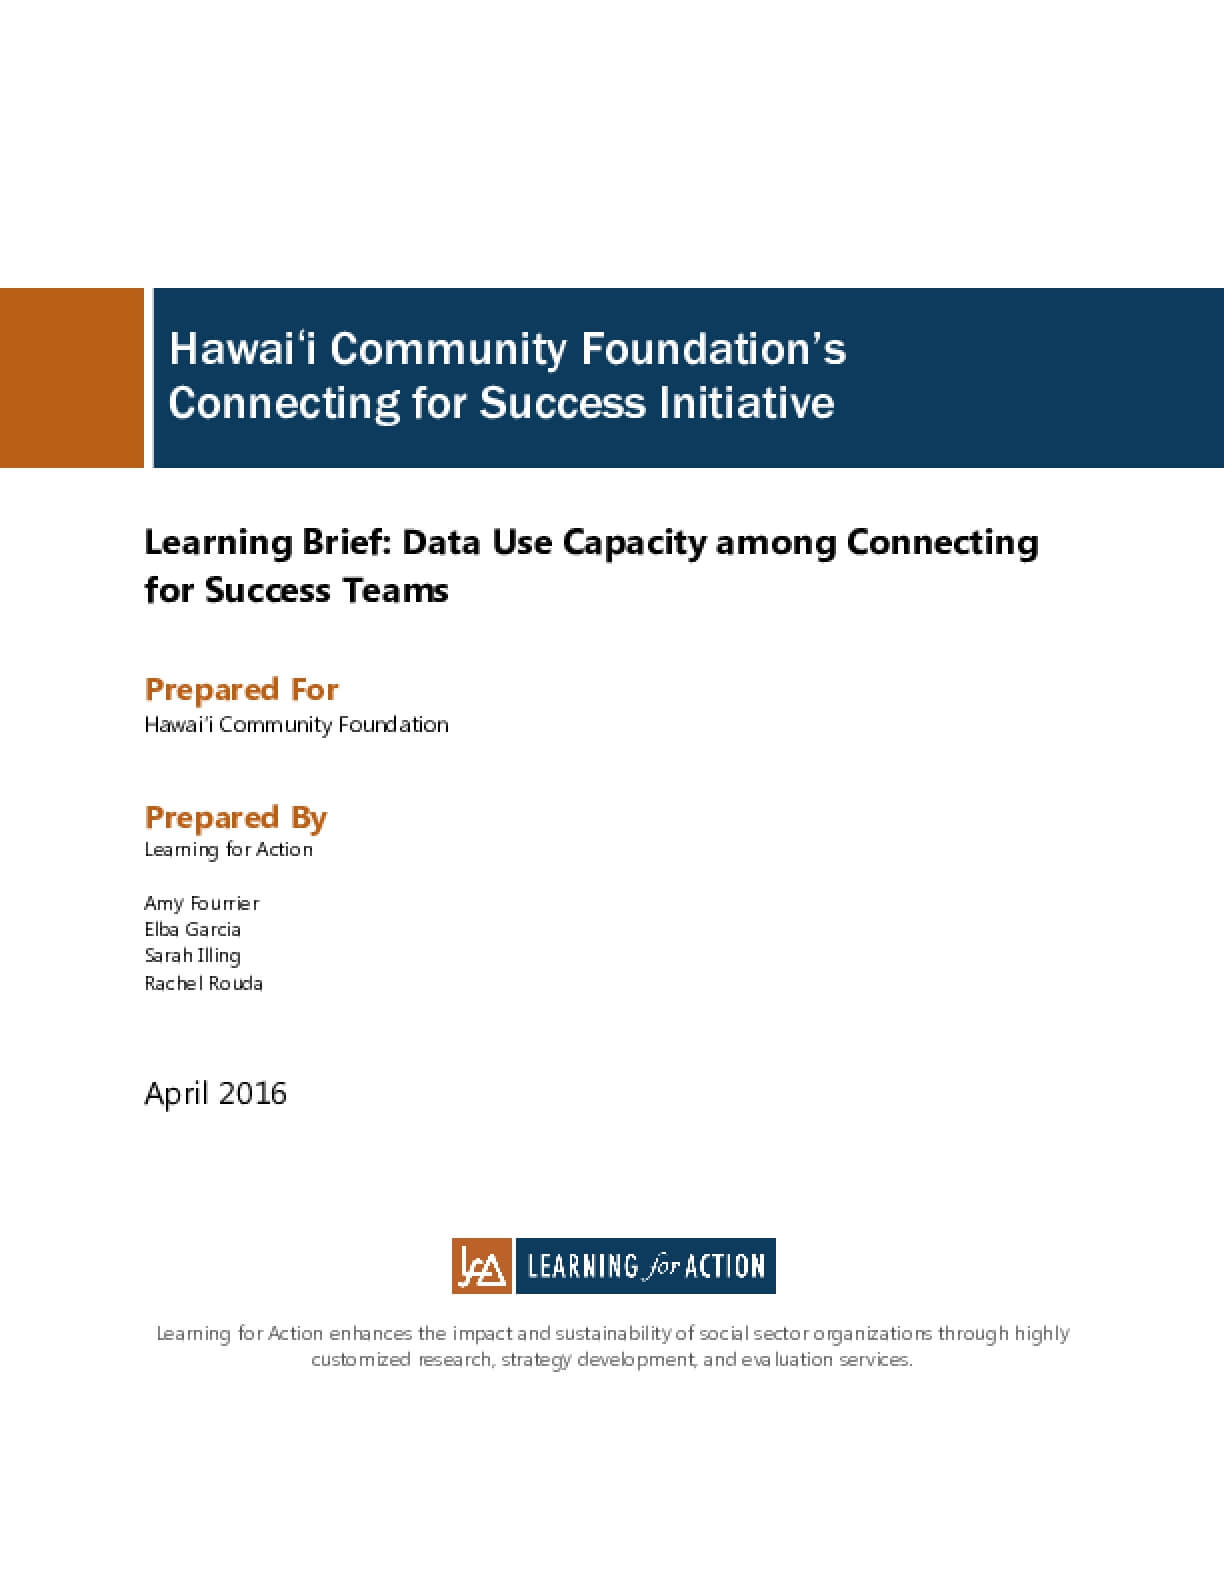 Learning Brief: Data Use Capacity among Connecting for Success Teams